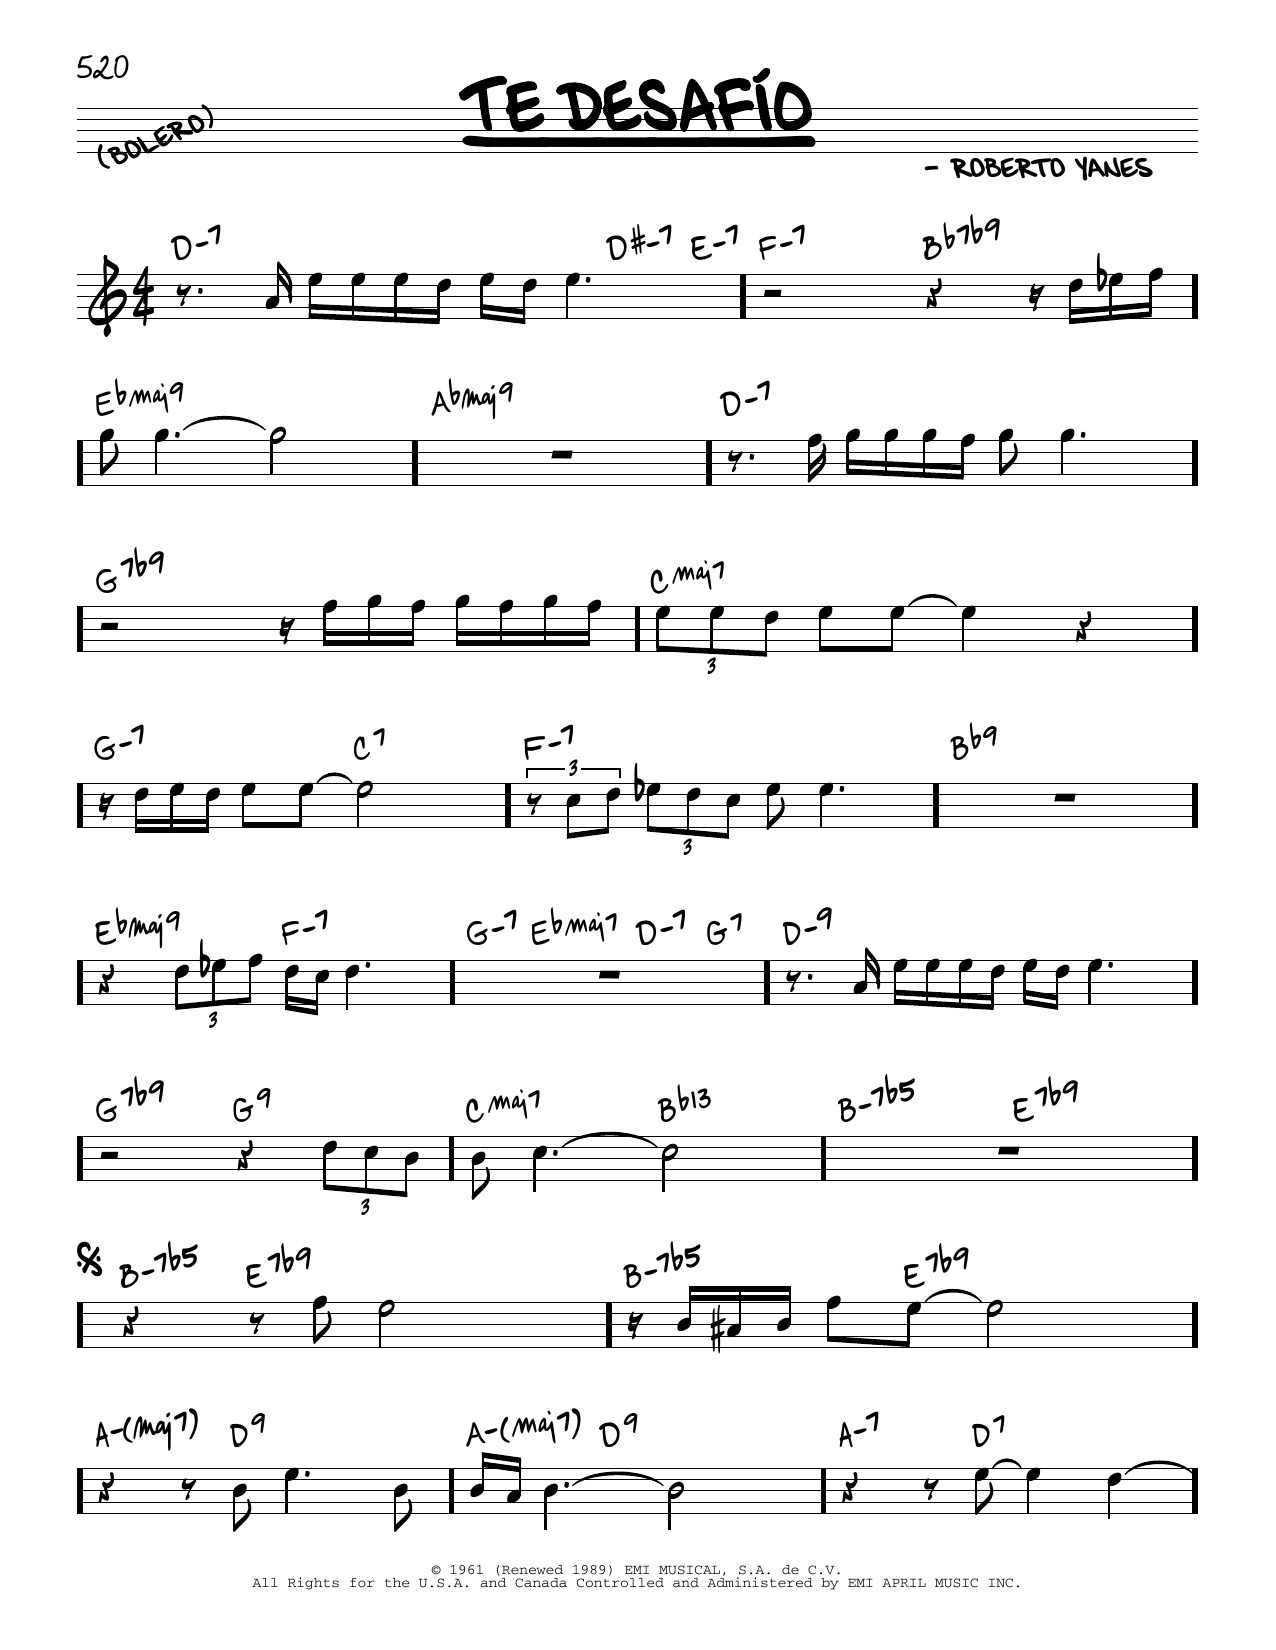 Tito Puente Te Desafio sheet music notes and chords. Download Printable PDF.